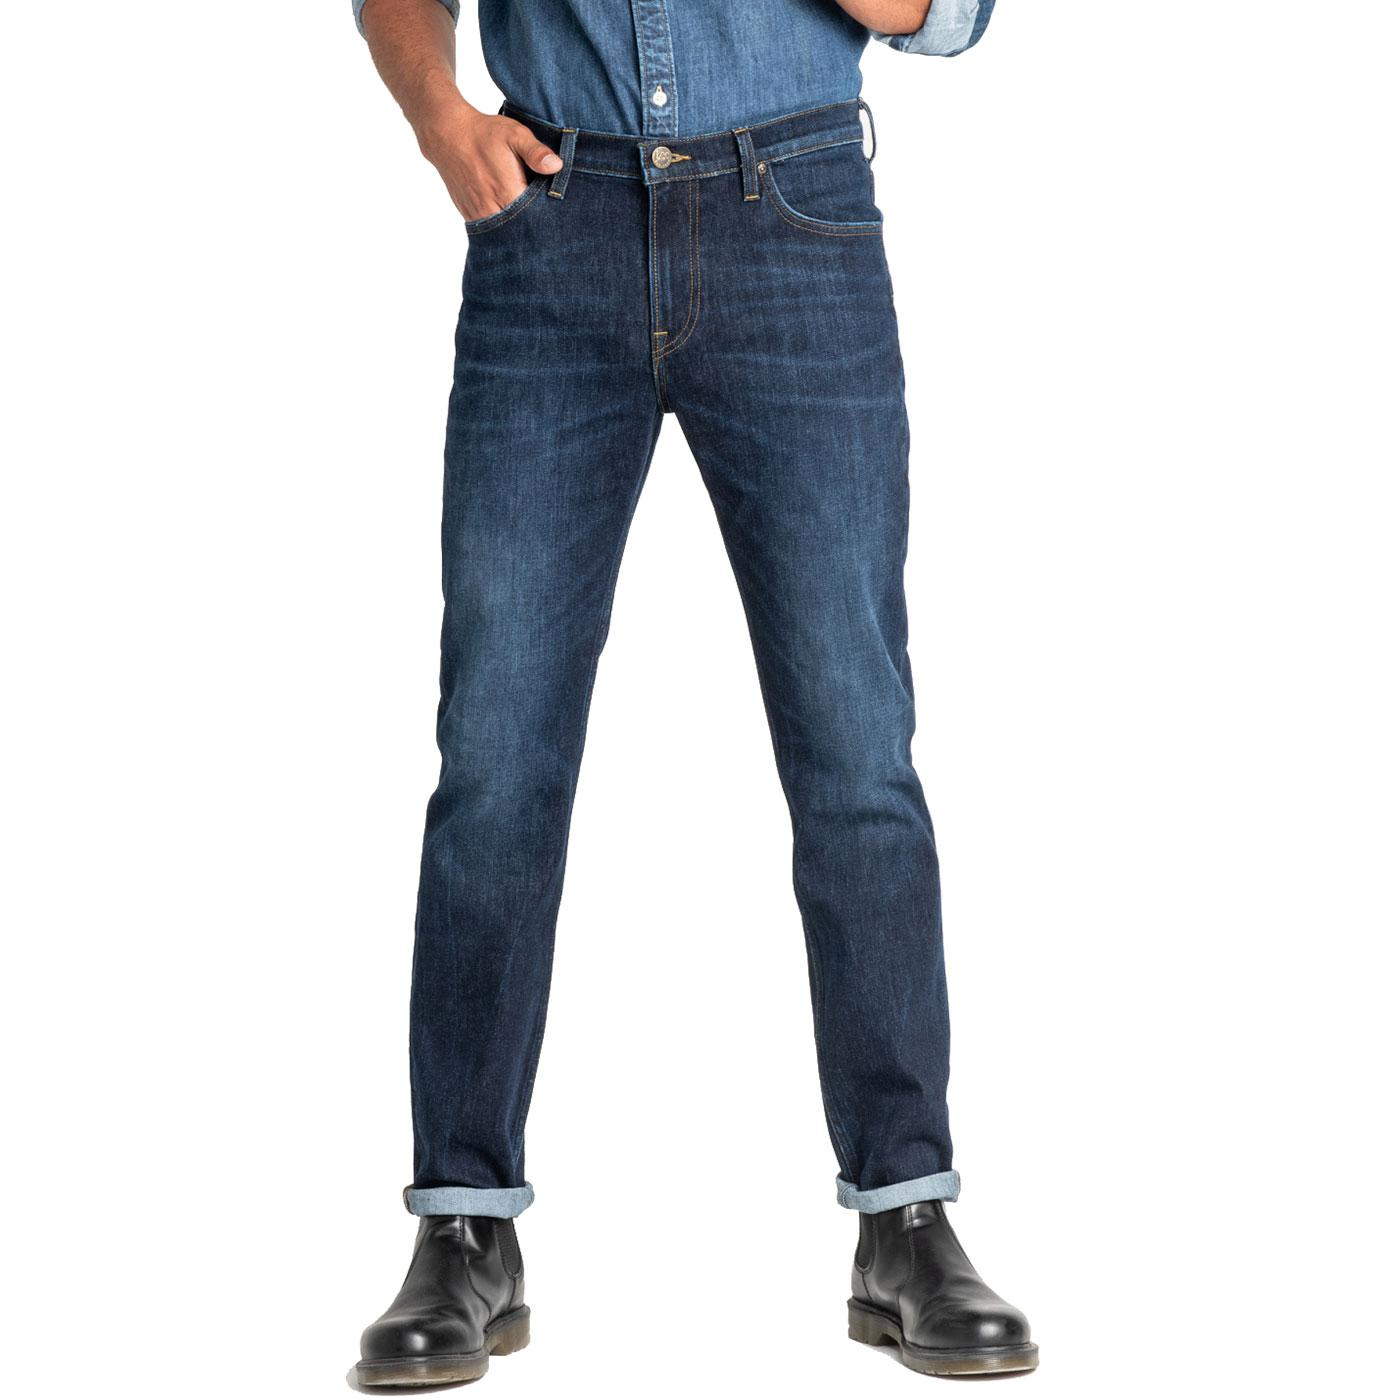 Slim Rider LEE JEANS Retro Denim Jeans DARK POOL